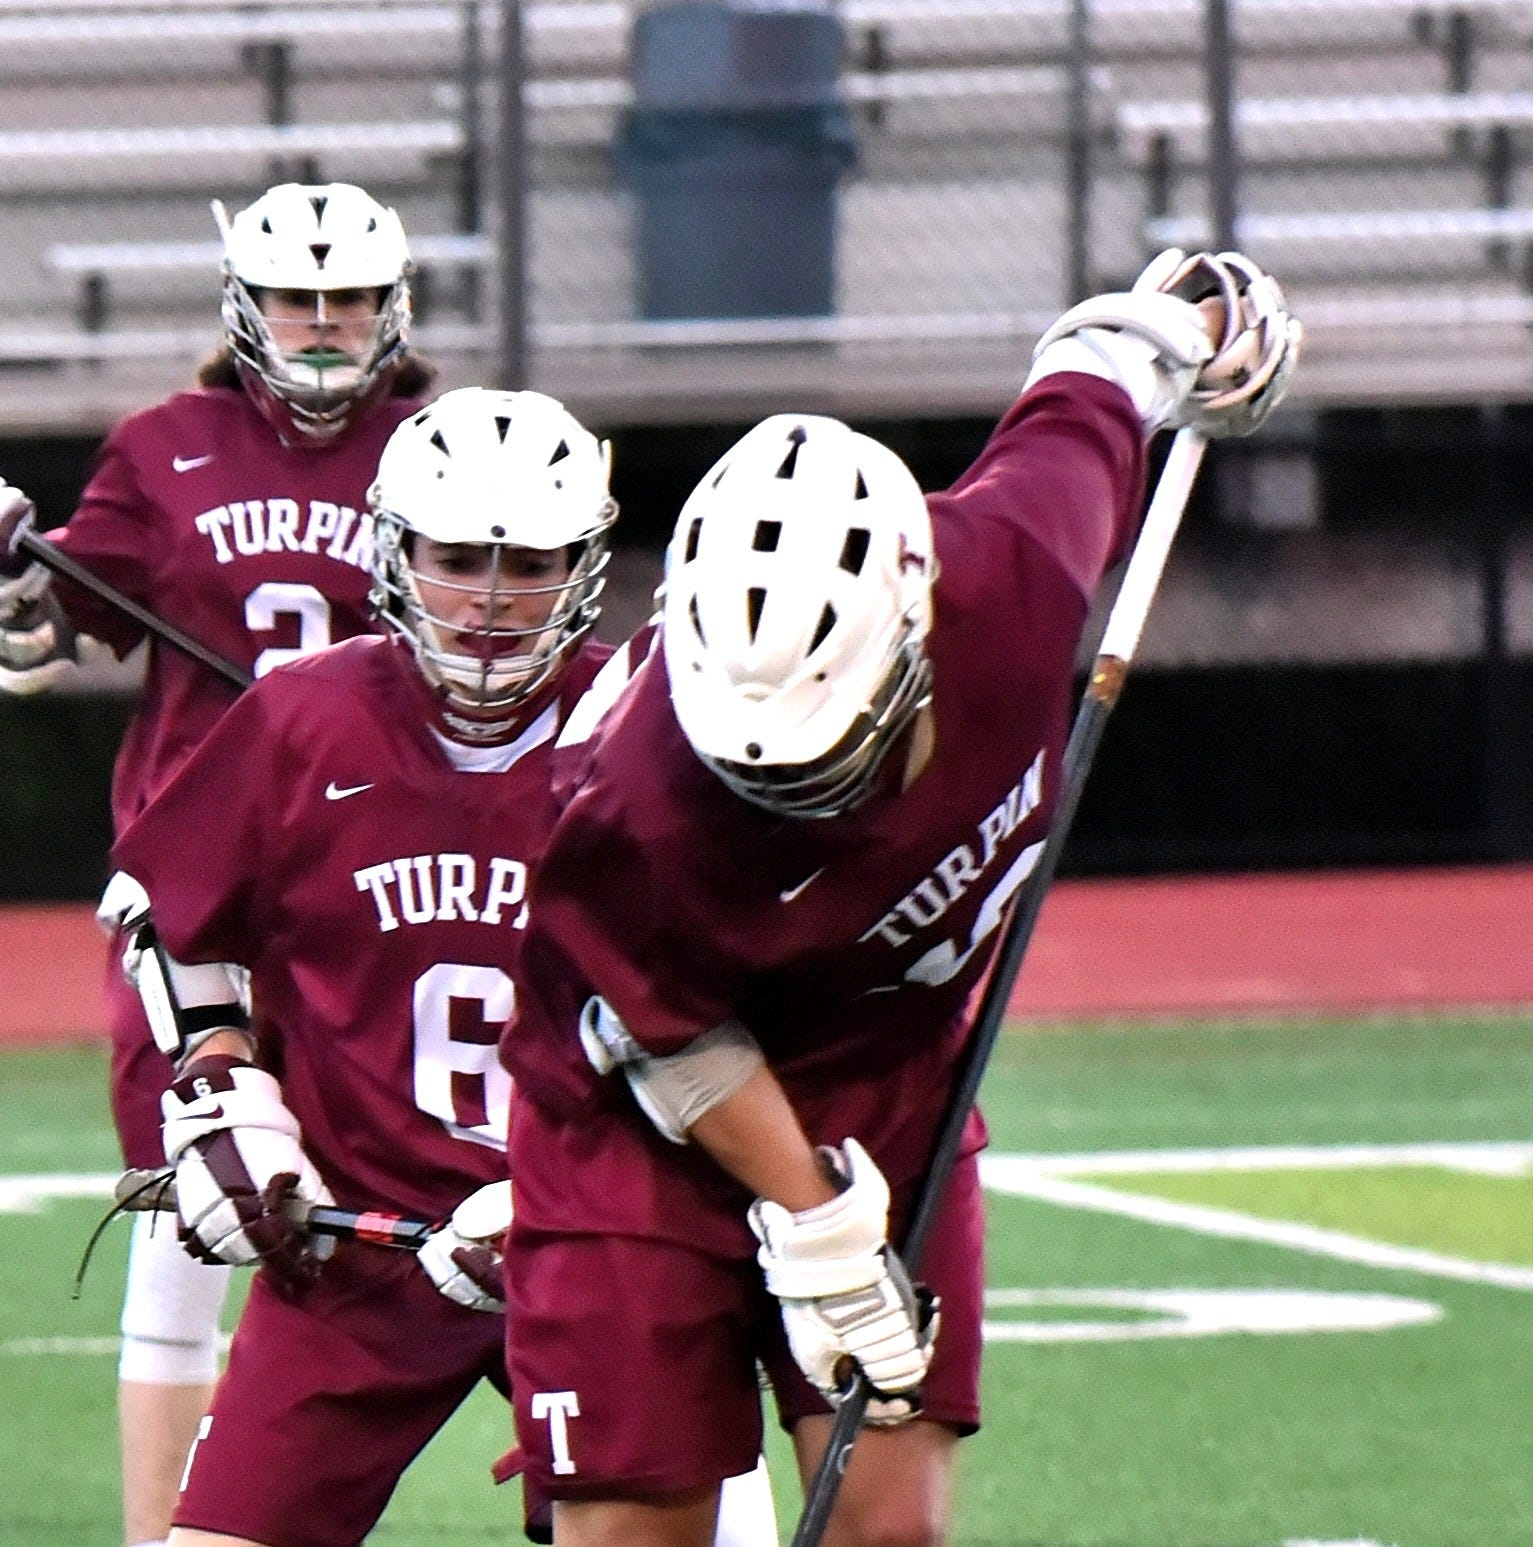 Cole Kueper of Turpin scoops and controls the ball on defense for the Spartans at the Kings Senior Night Boys Lacrosse matchup against Turpin, May 1, 2019.